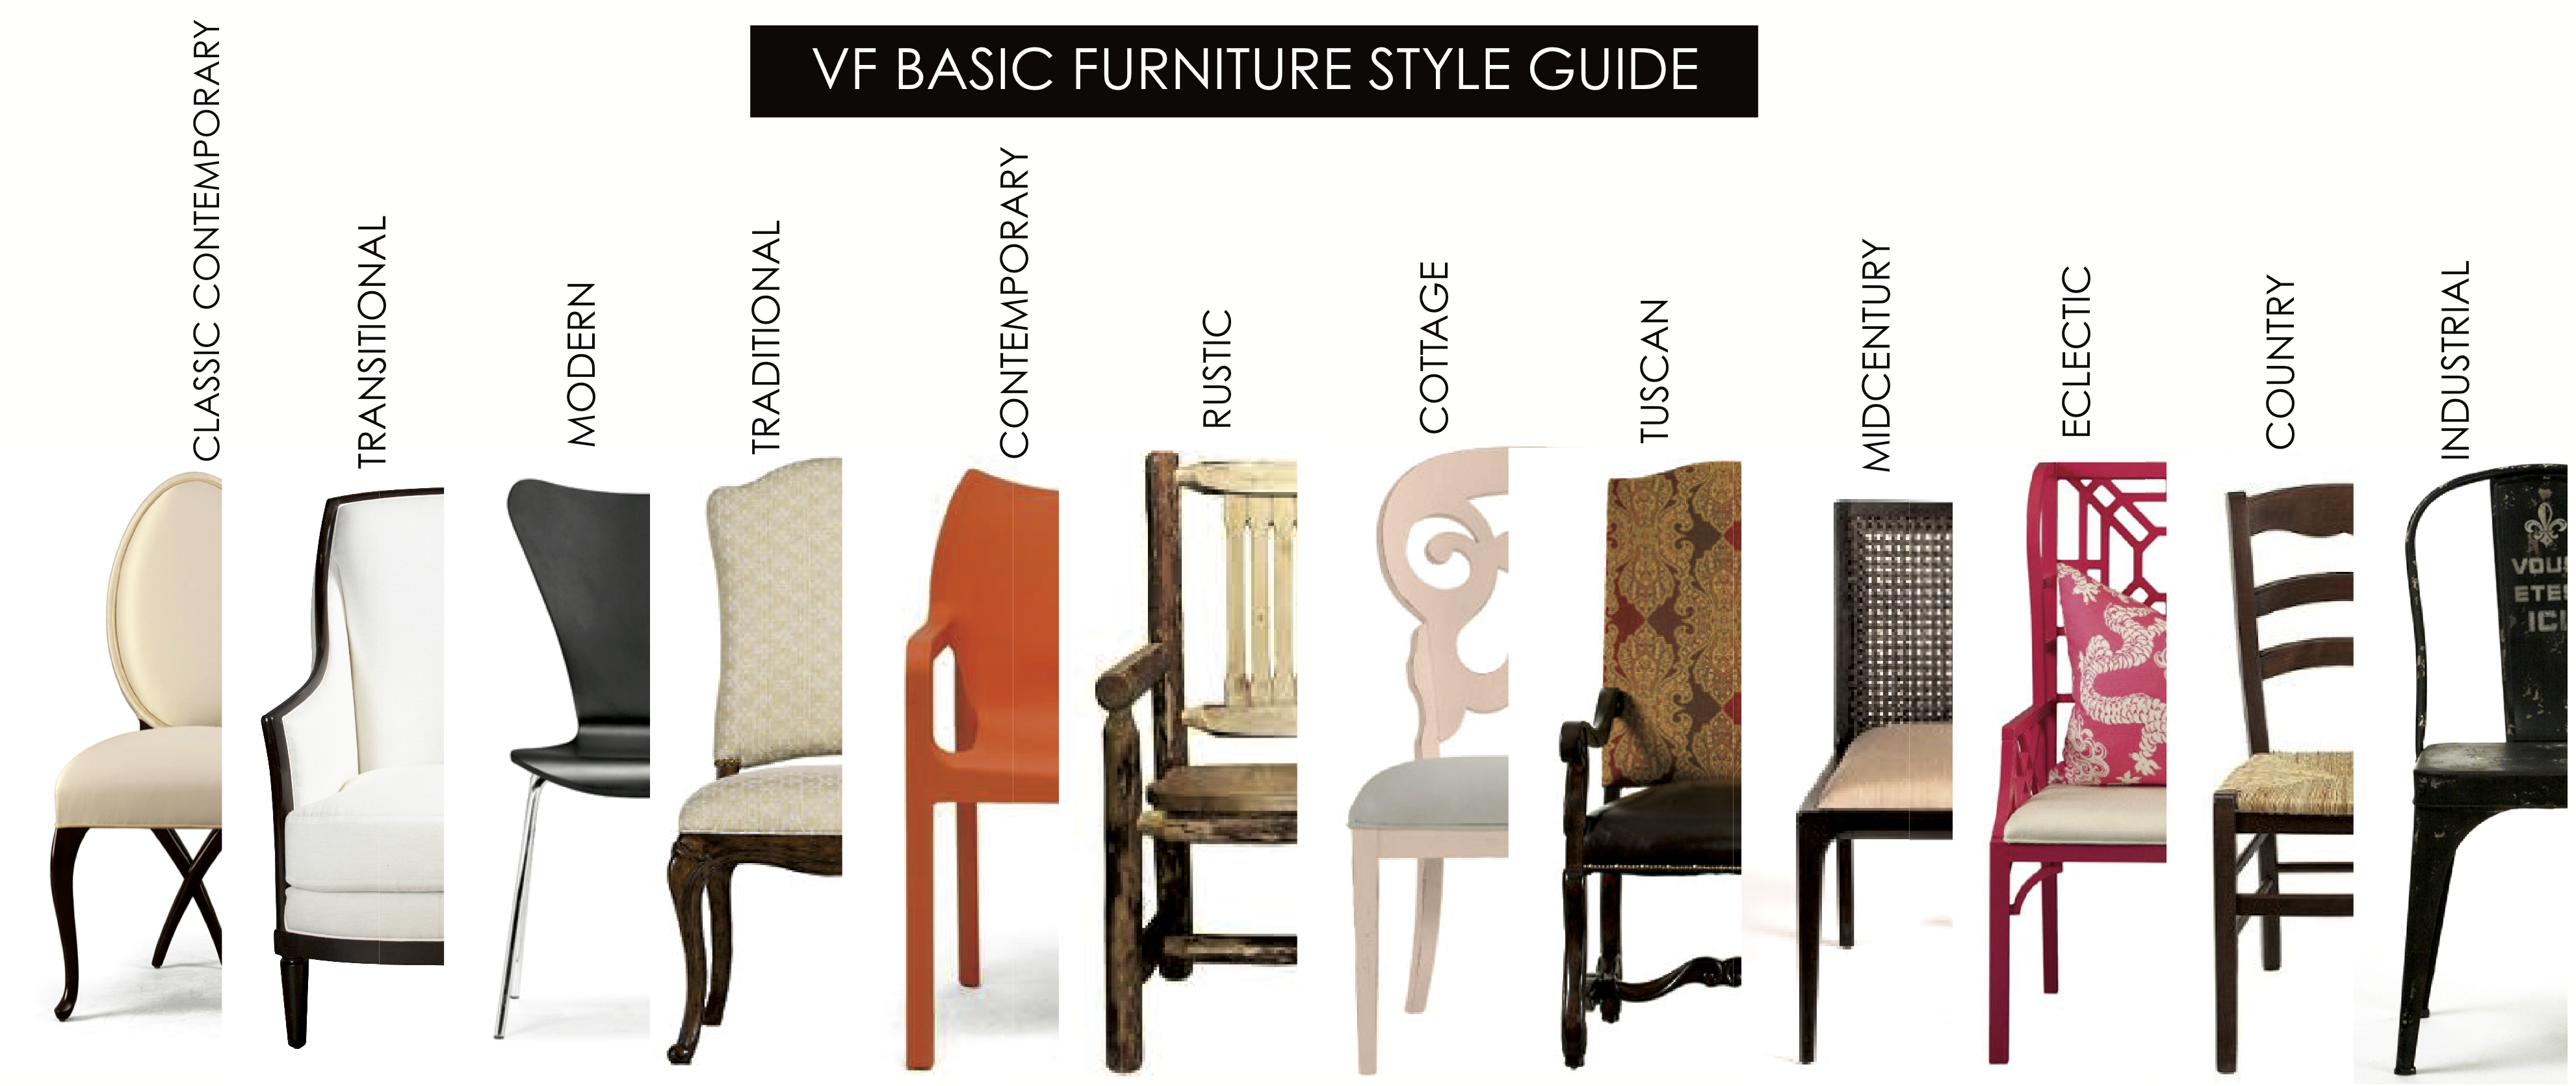 Furniture Style Basics 101 Vf Basic Furniture Styles Guide